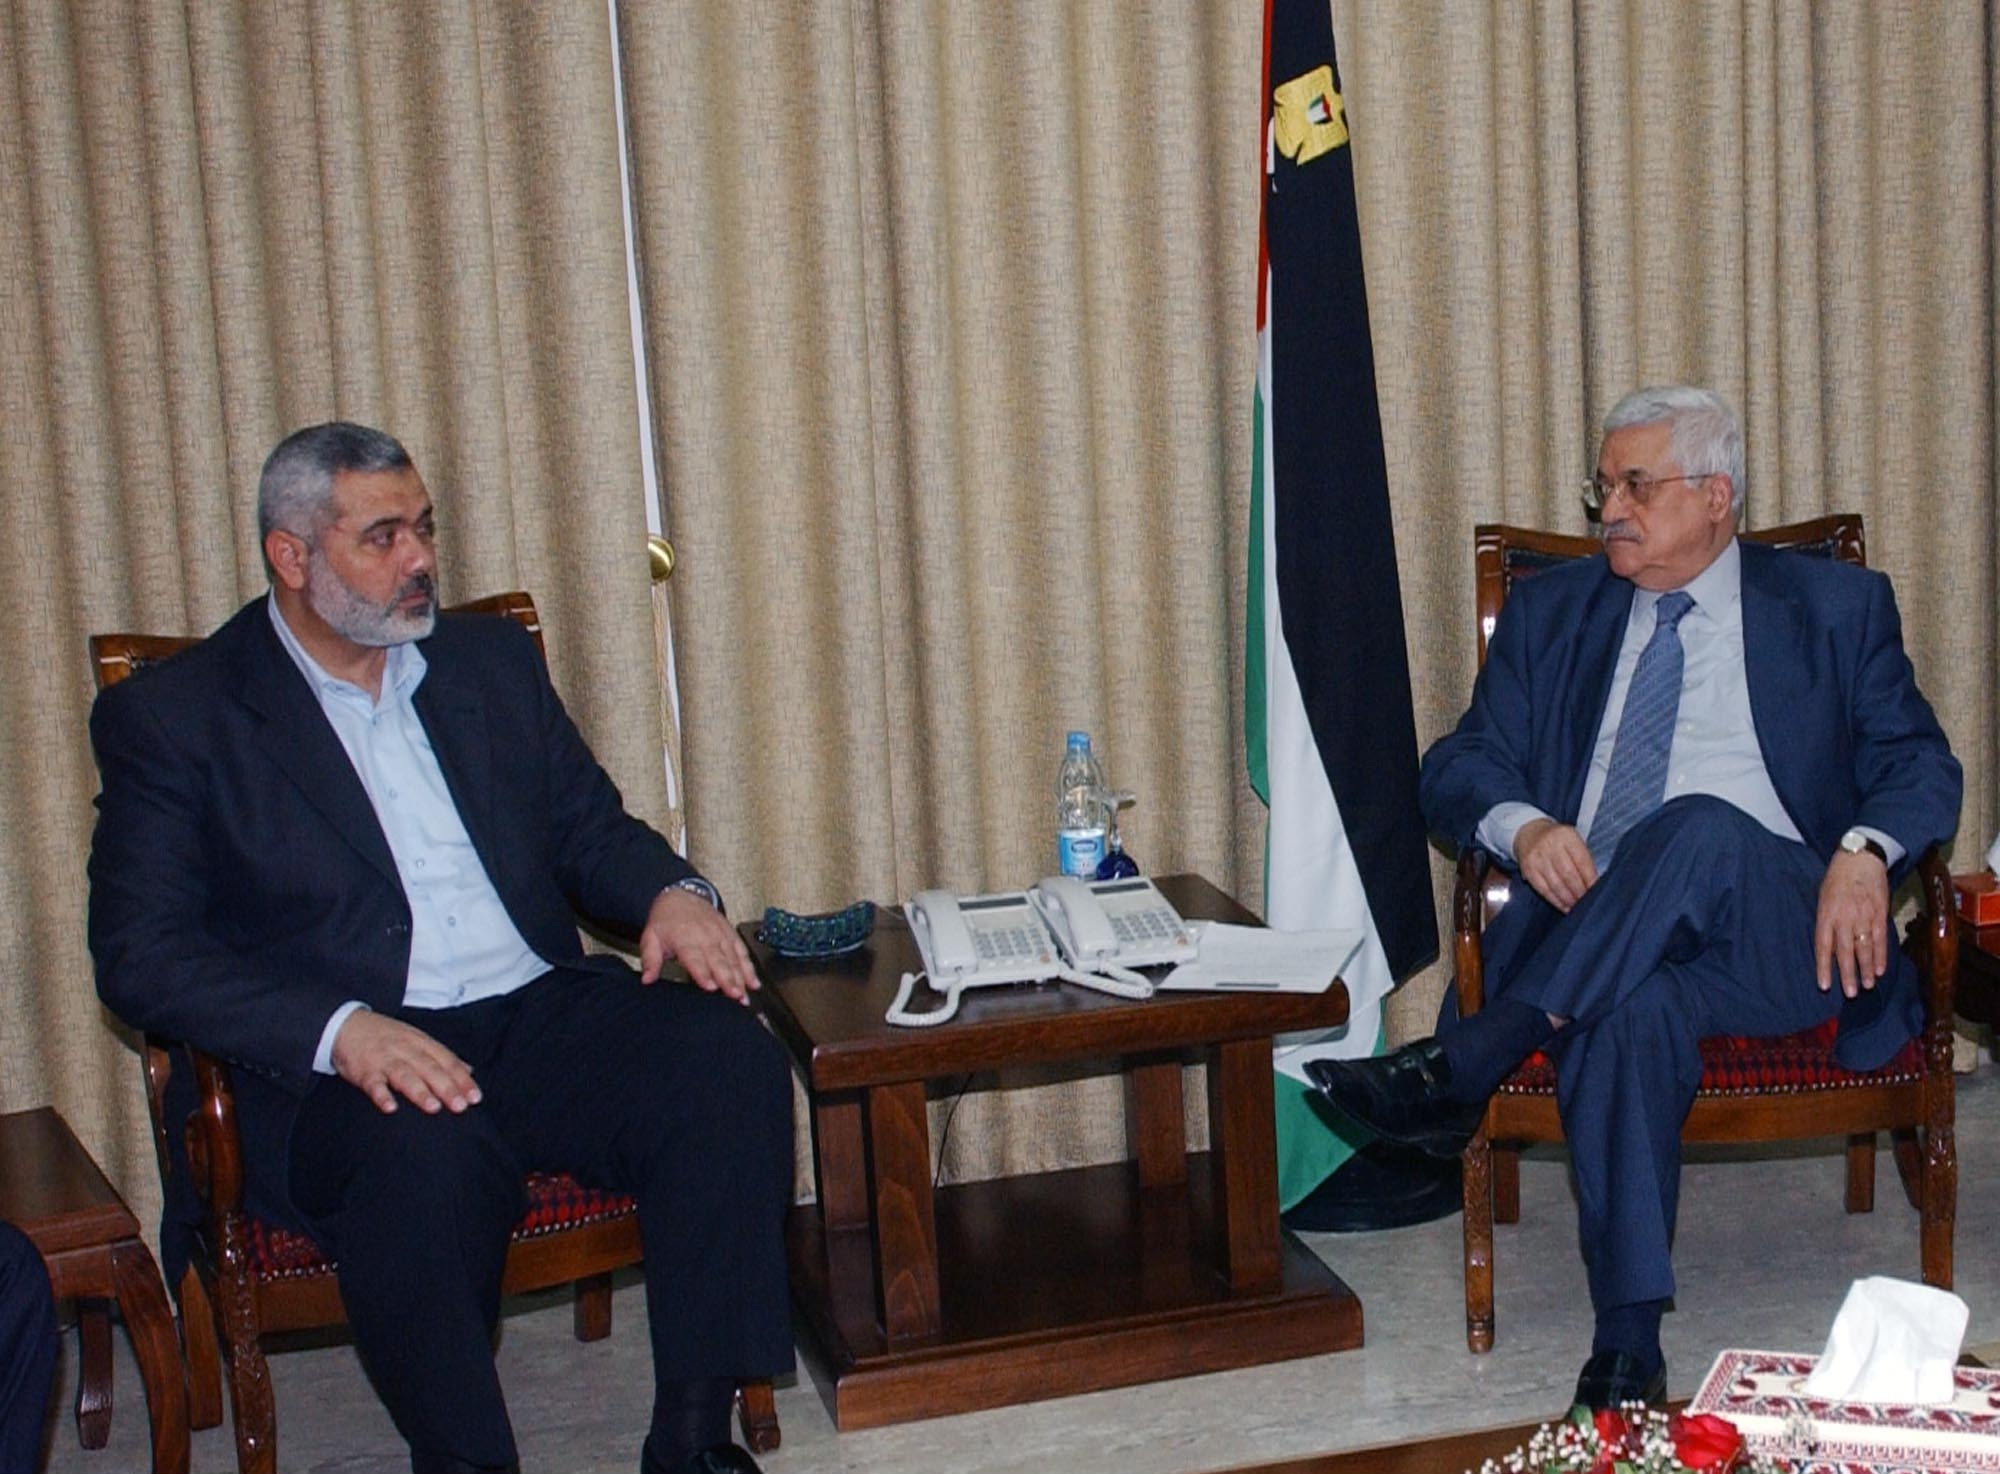 Palestinians: No Difference Between Hamas and Fatah